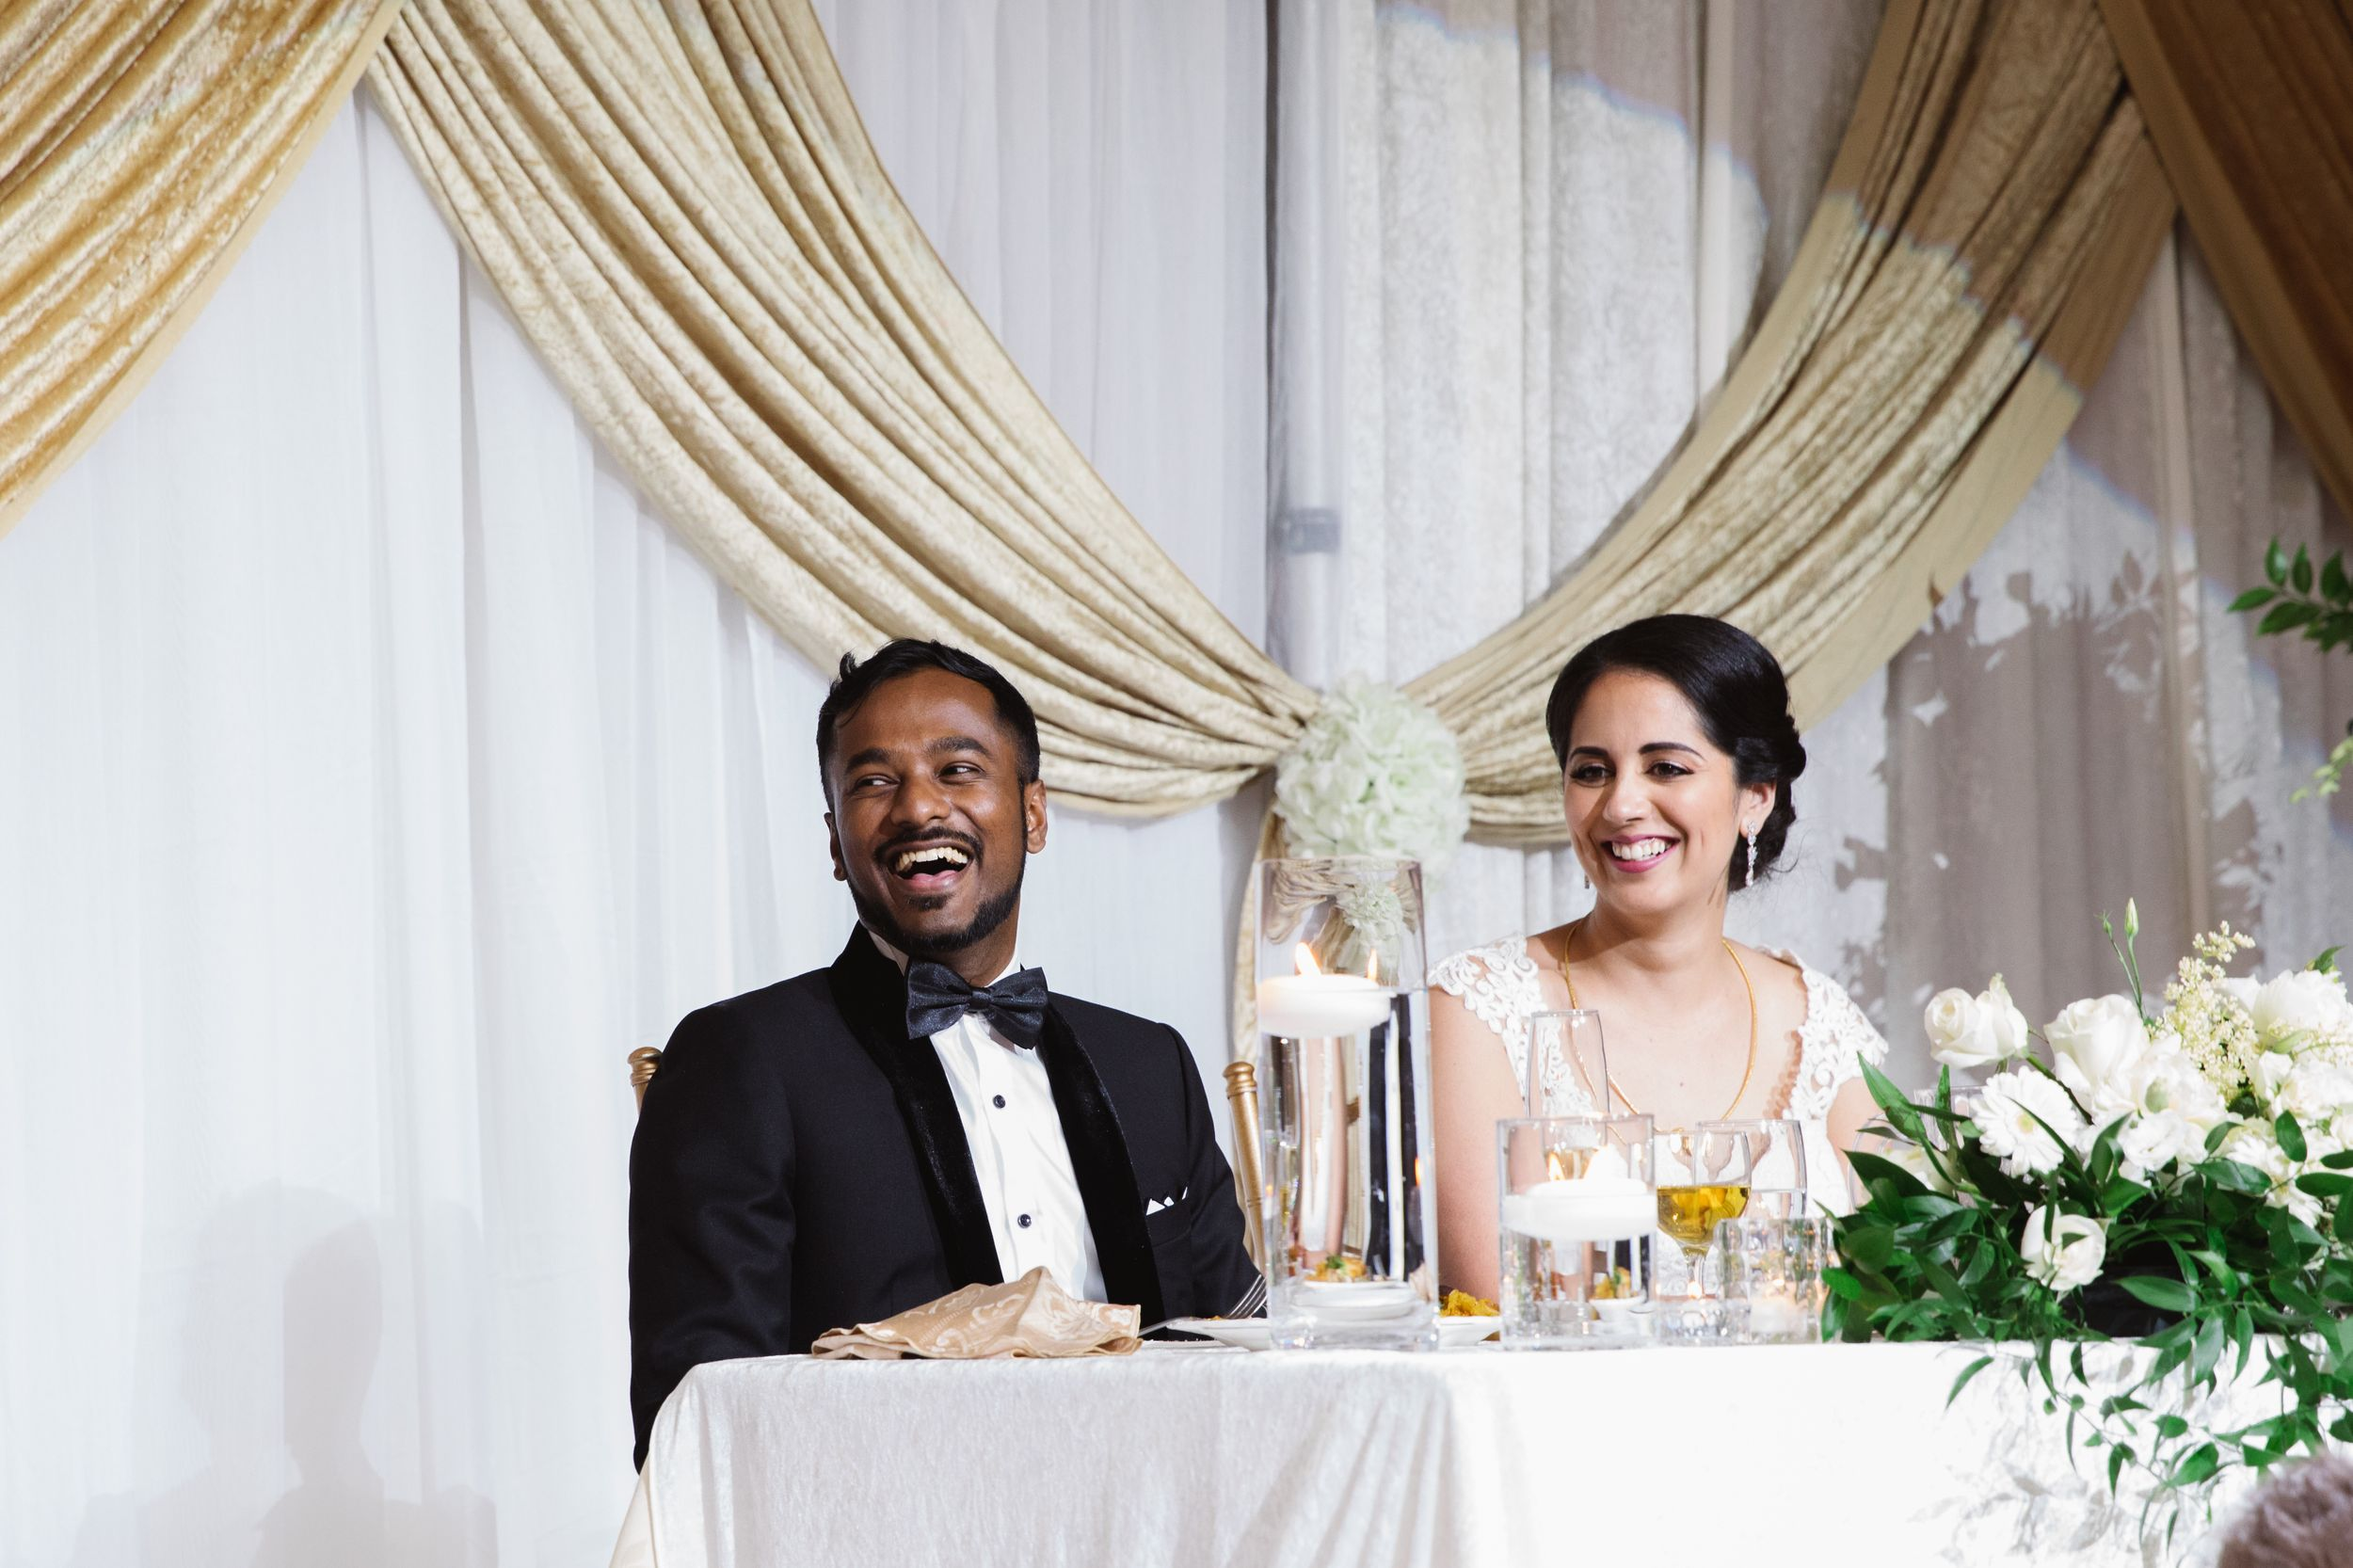 bride and groom sitting at a table laughing